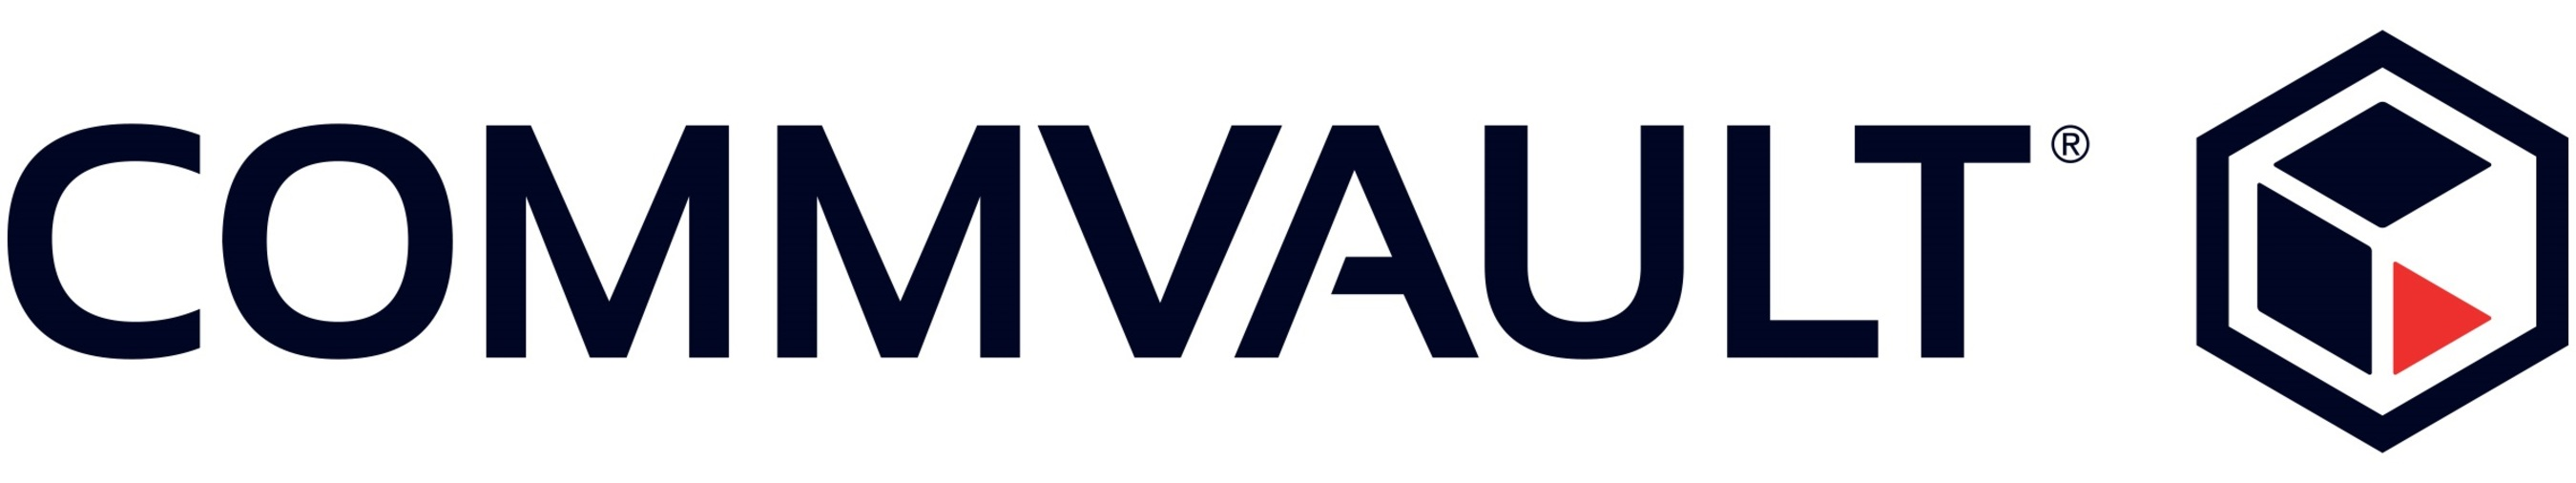 Commvault is the leader in data protection and information management software solutions.